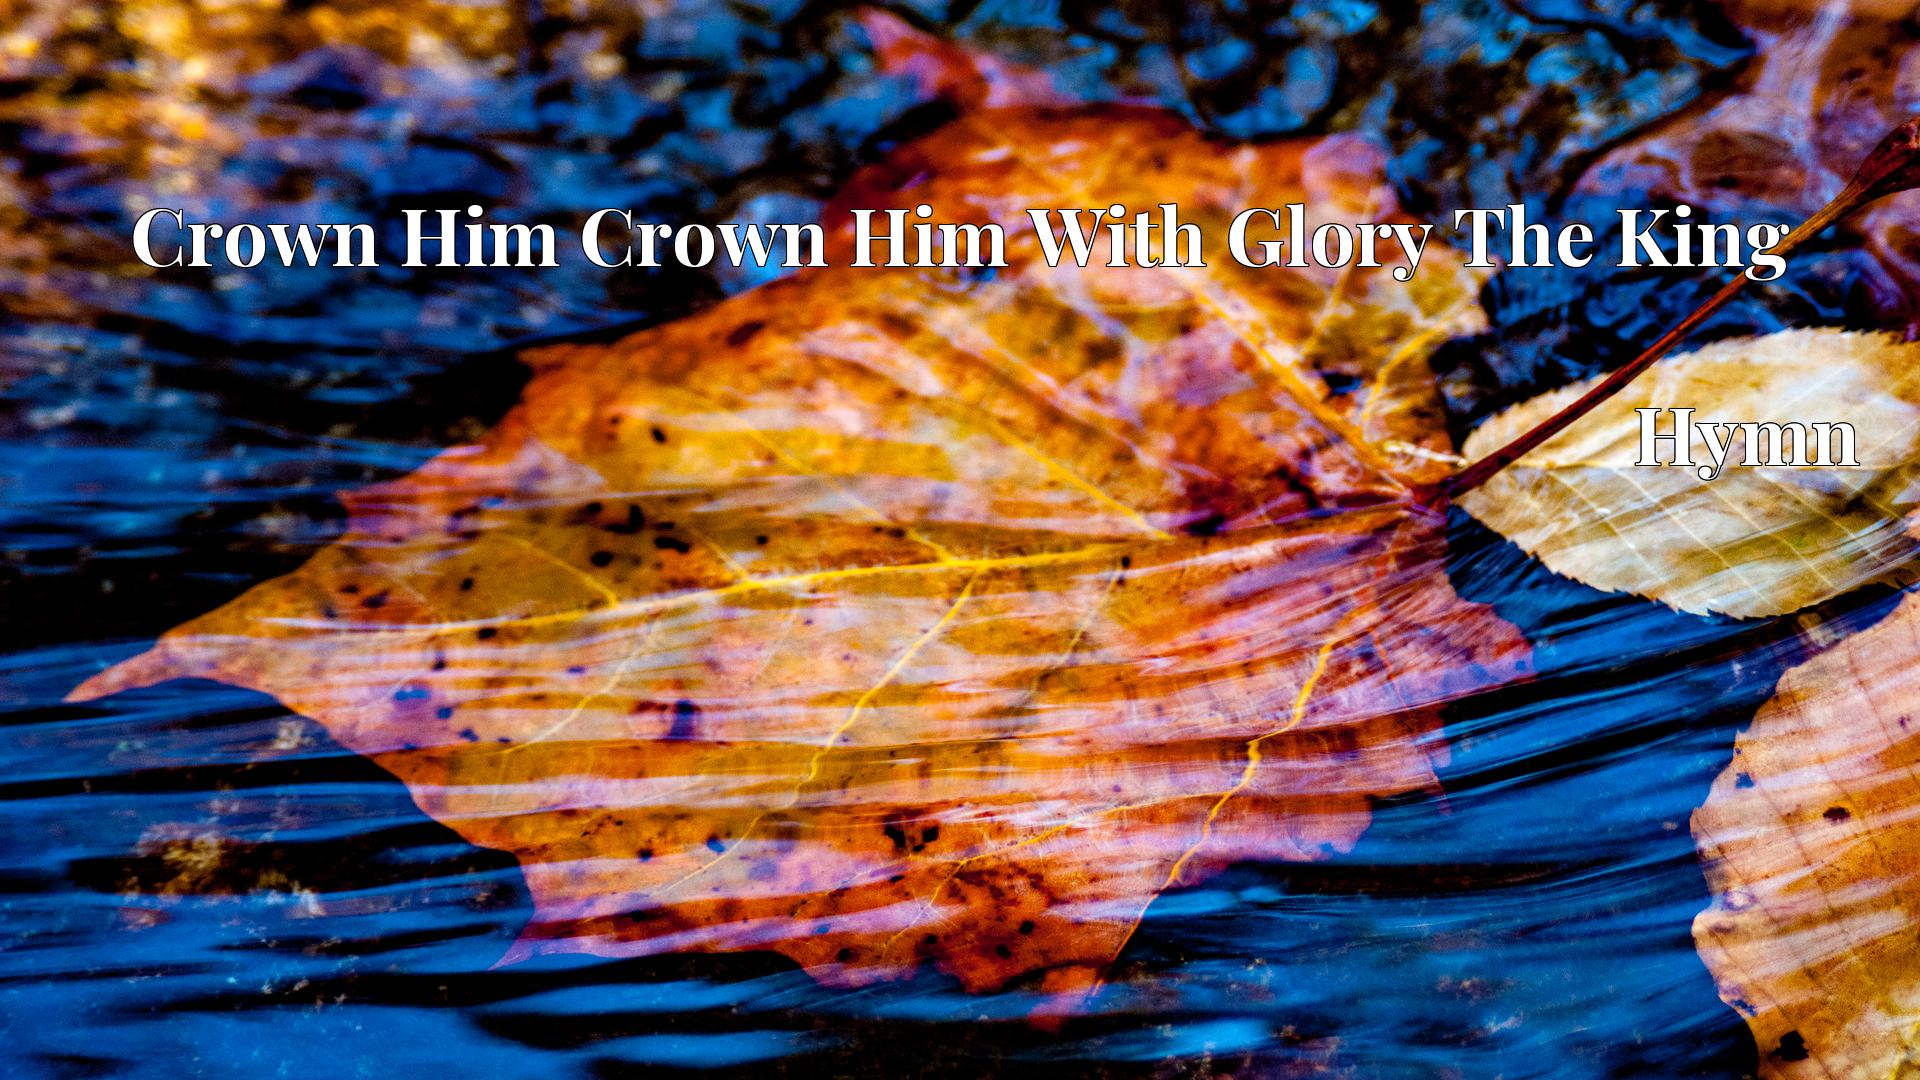 Crown Him Crown Him With Glory The King - Hymn